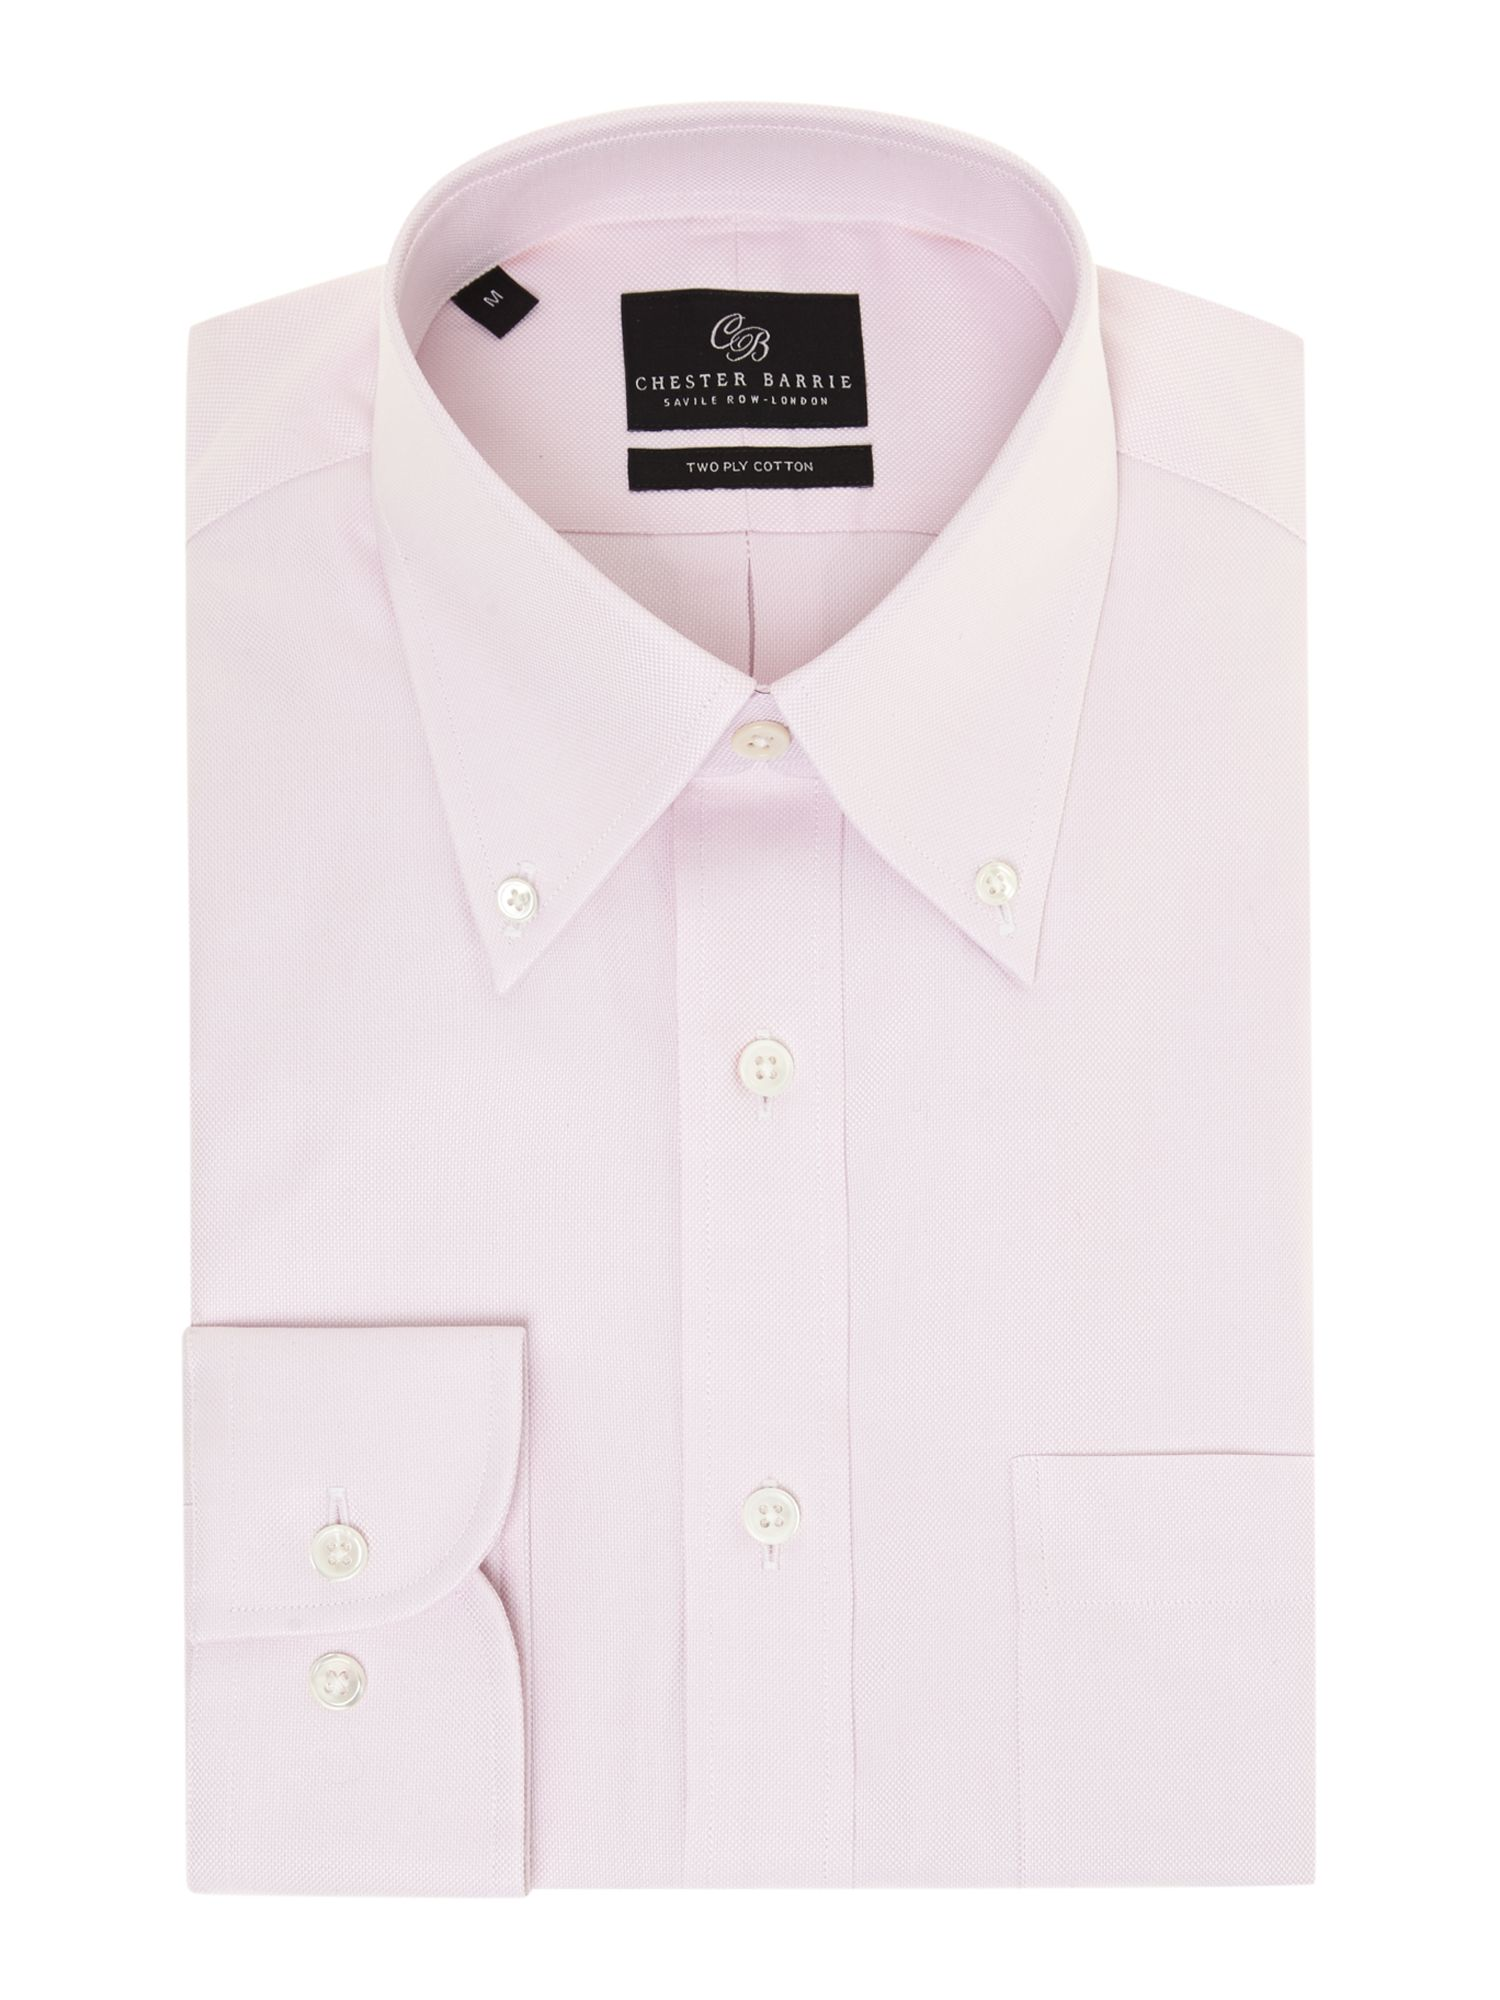 Classic button down collar shirt